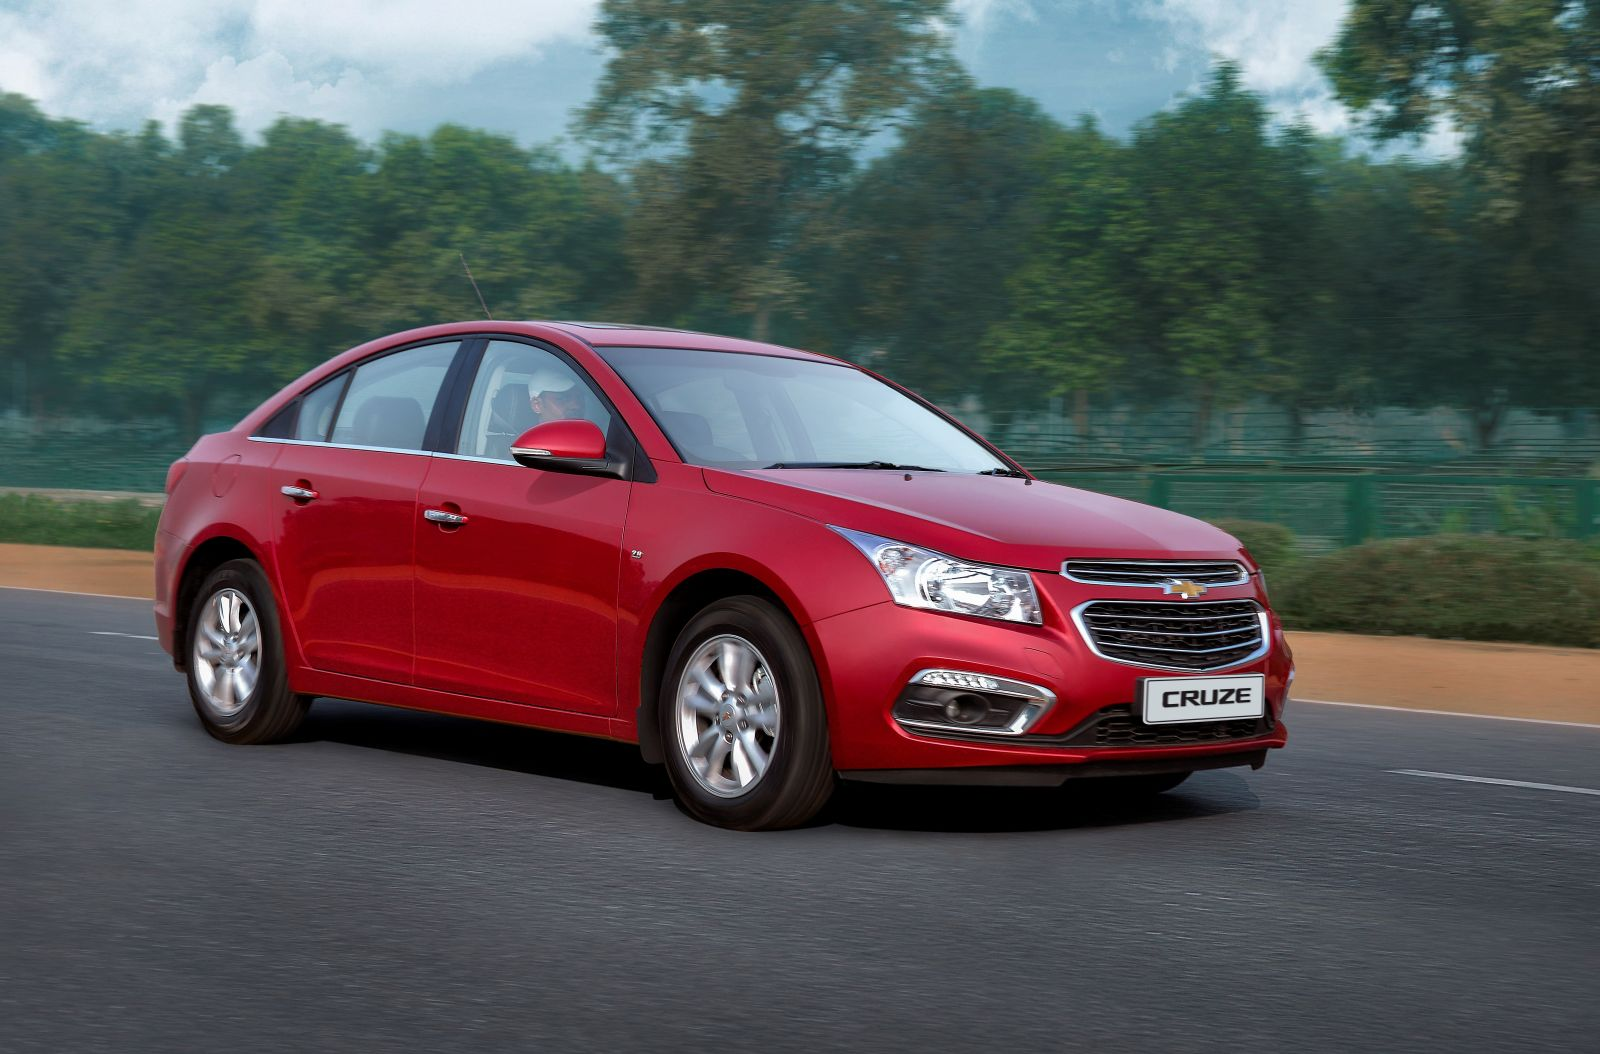 General motors india inaugurates new 3s facility in andhra for General motors chevrolet customer service